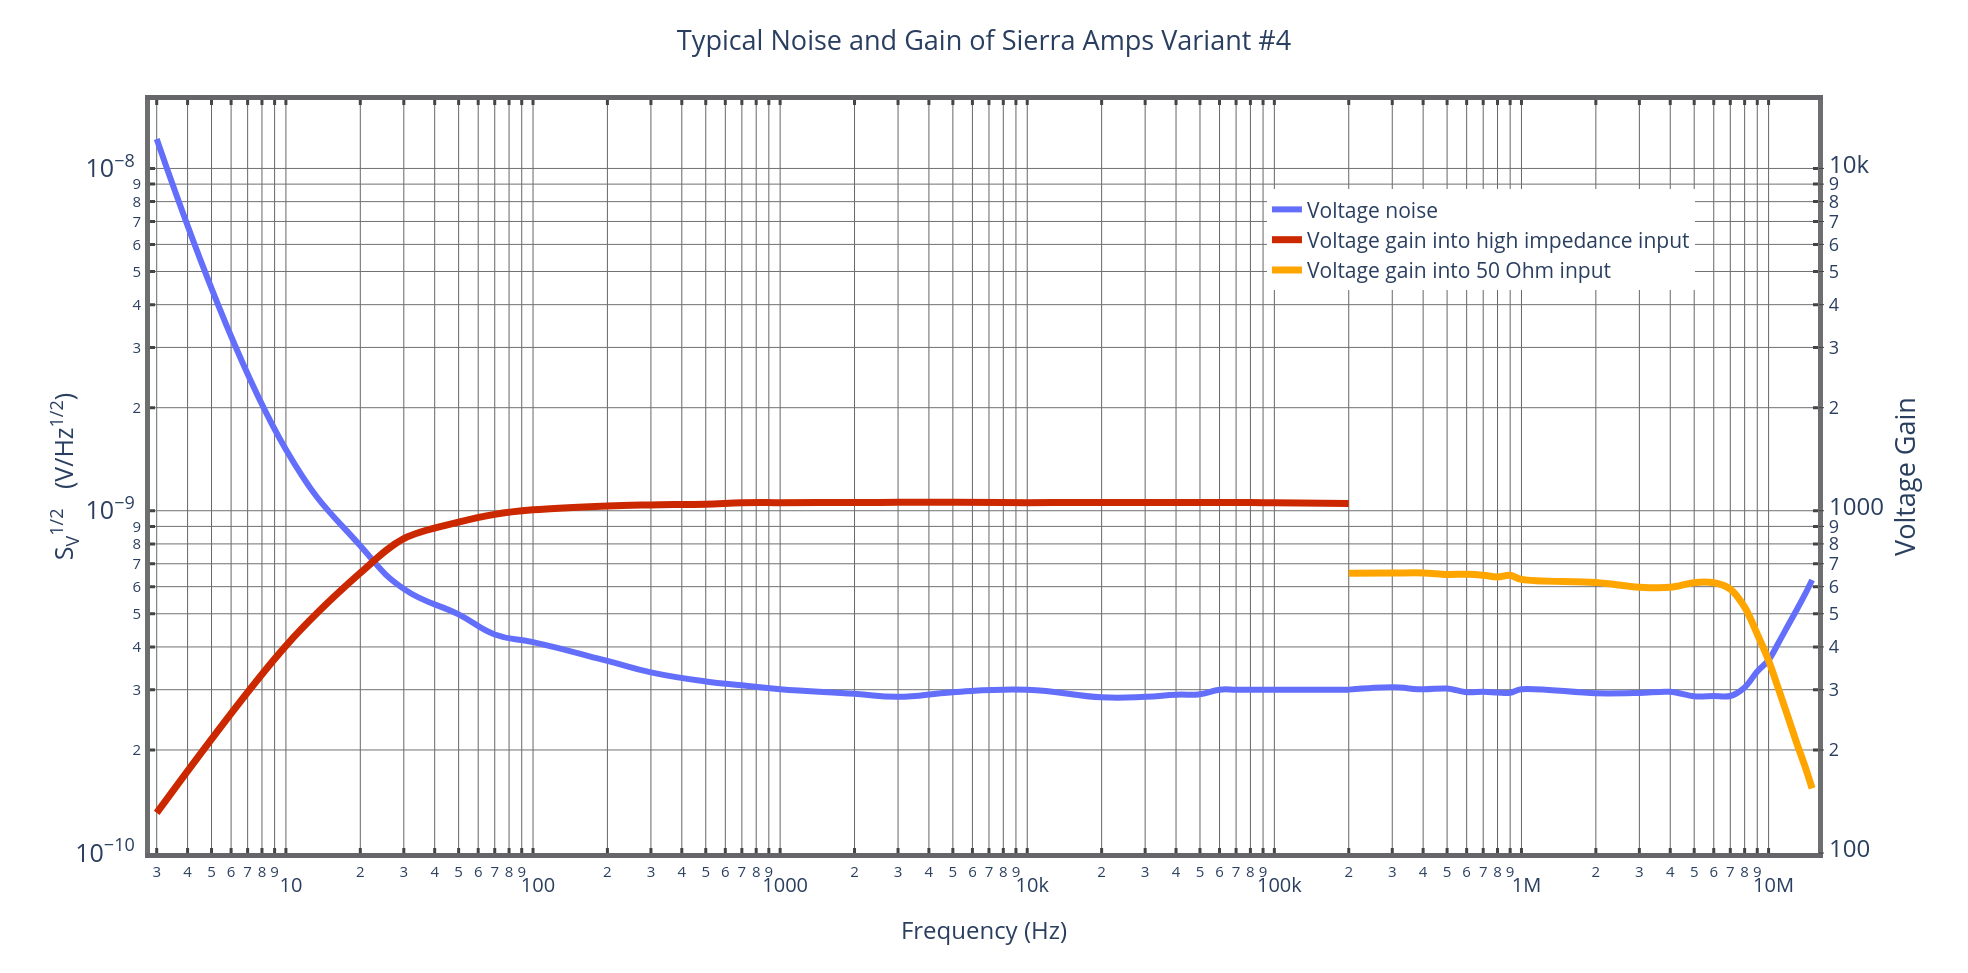 Measured noise and gain of SA1 Variant #4